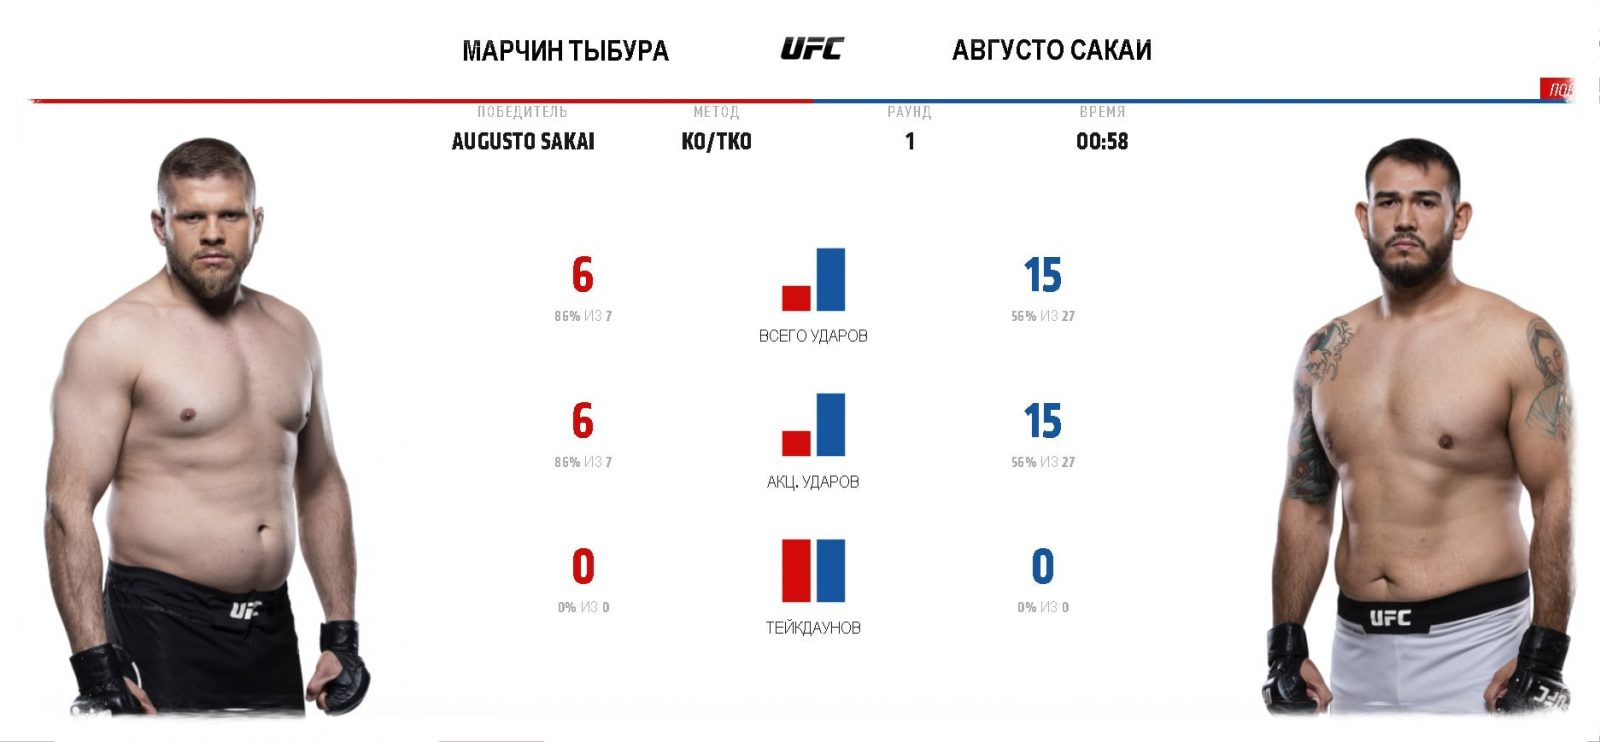 marchin-tybura-augusto-sakaj-video-boya-na-ufc-fight-night-158-ufc-on-espn-16